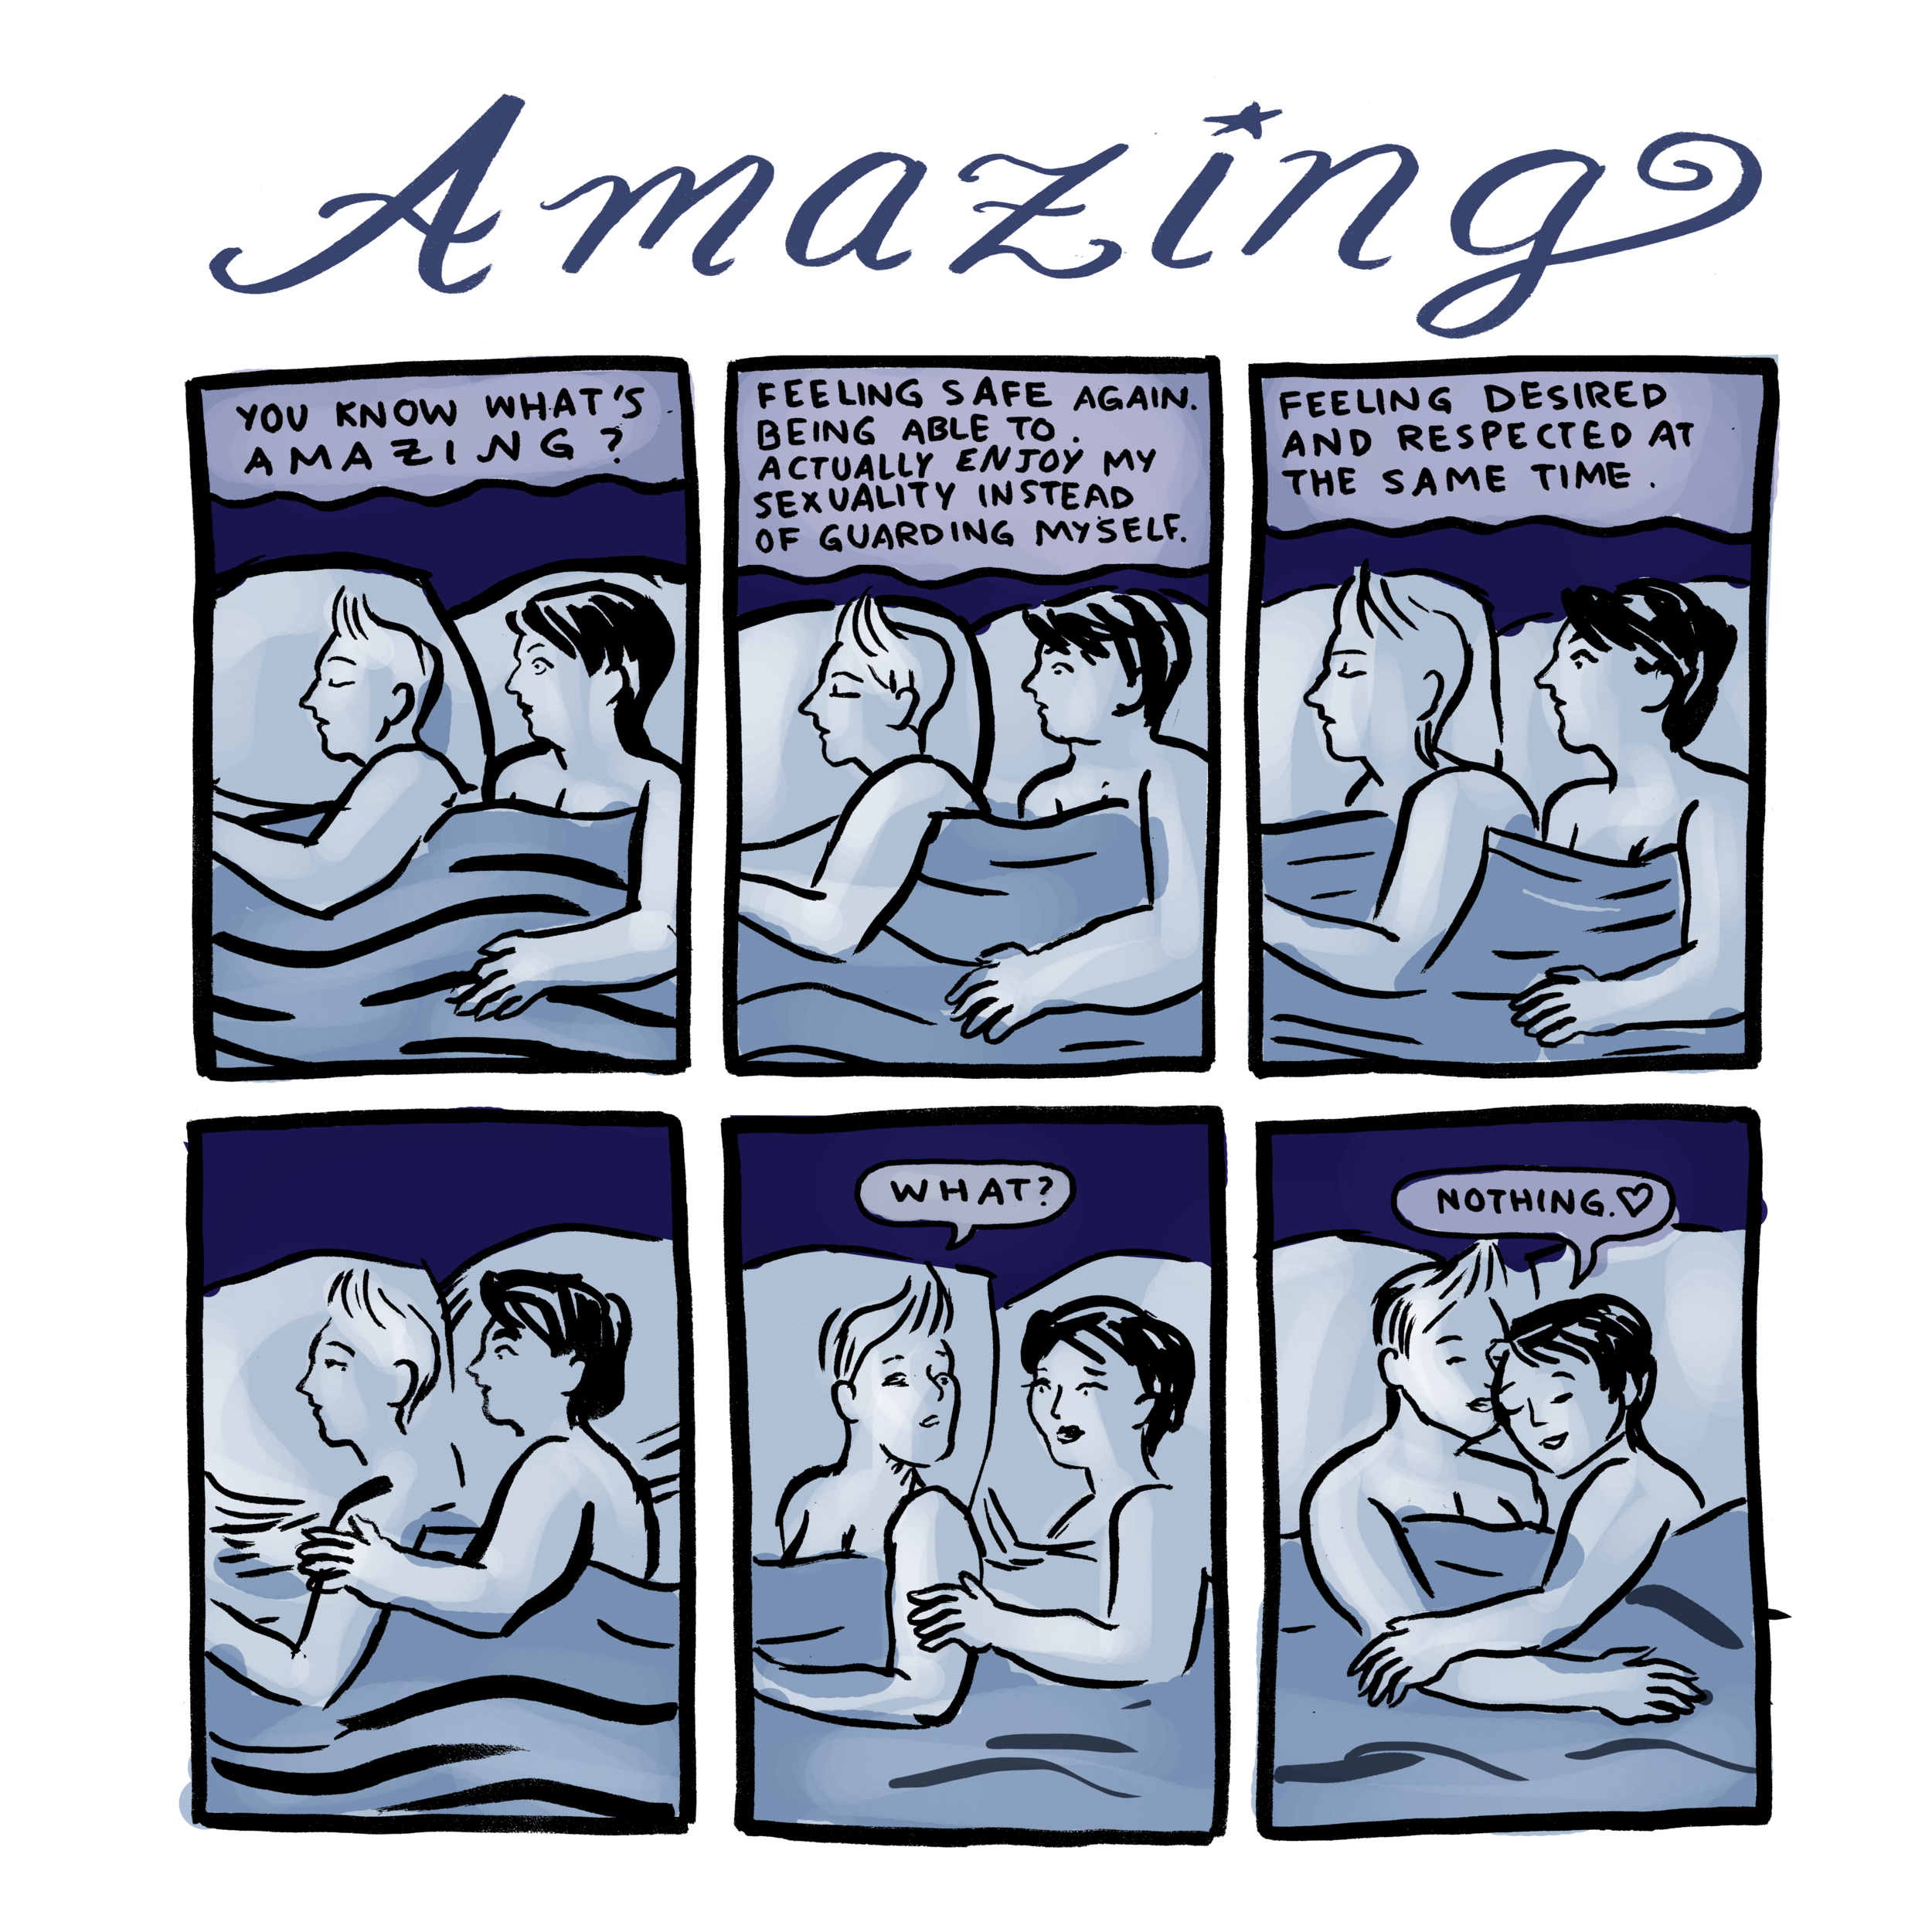 171015_amazing.png